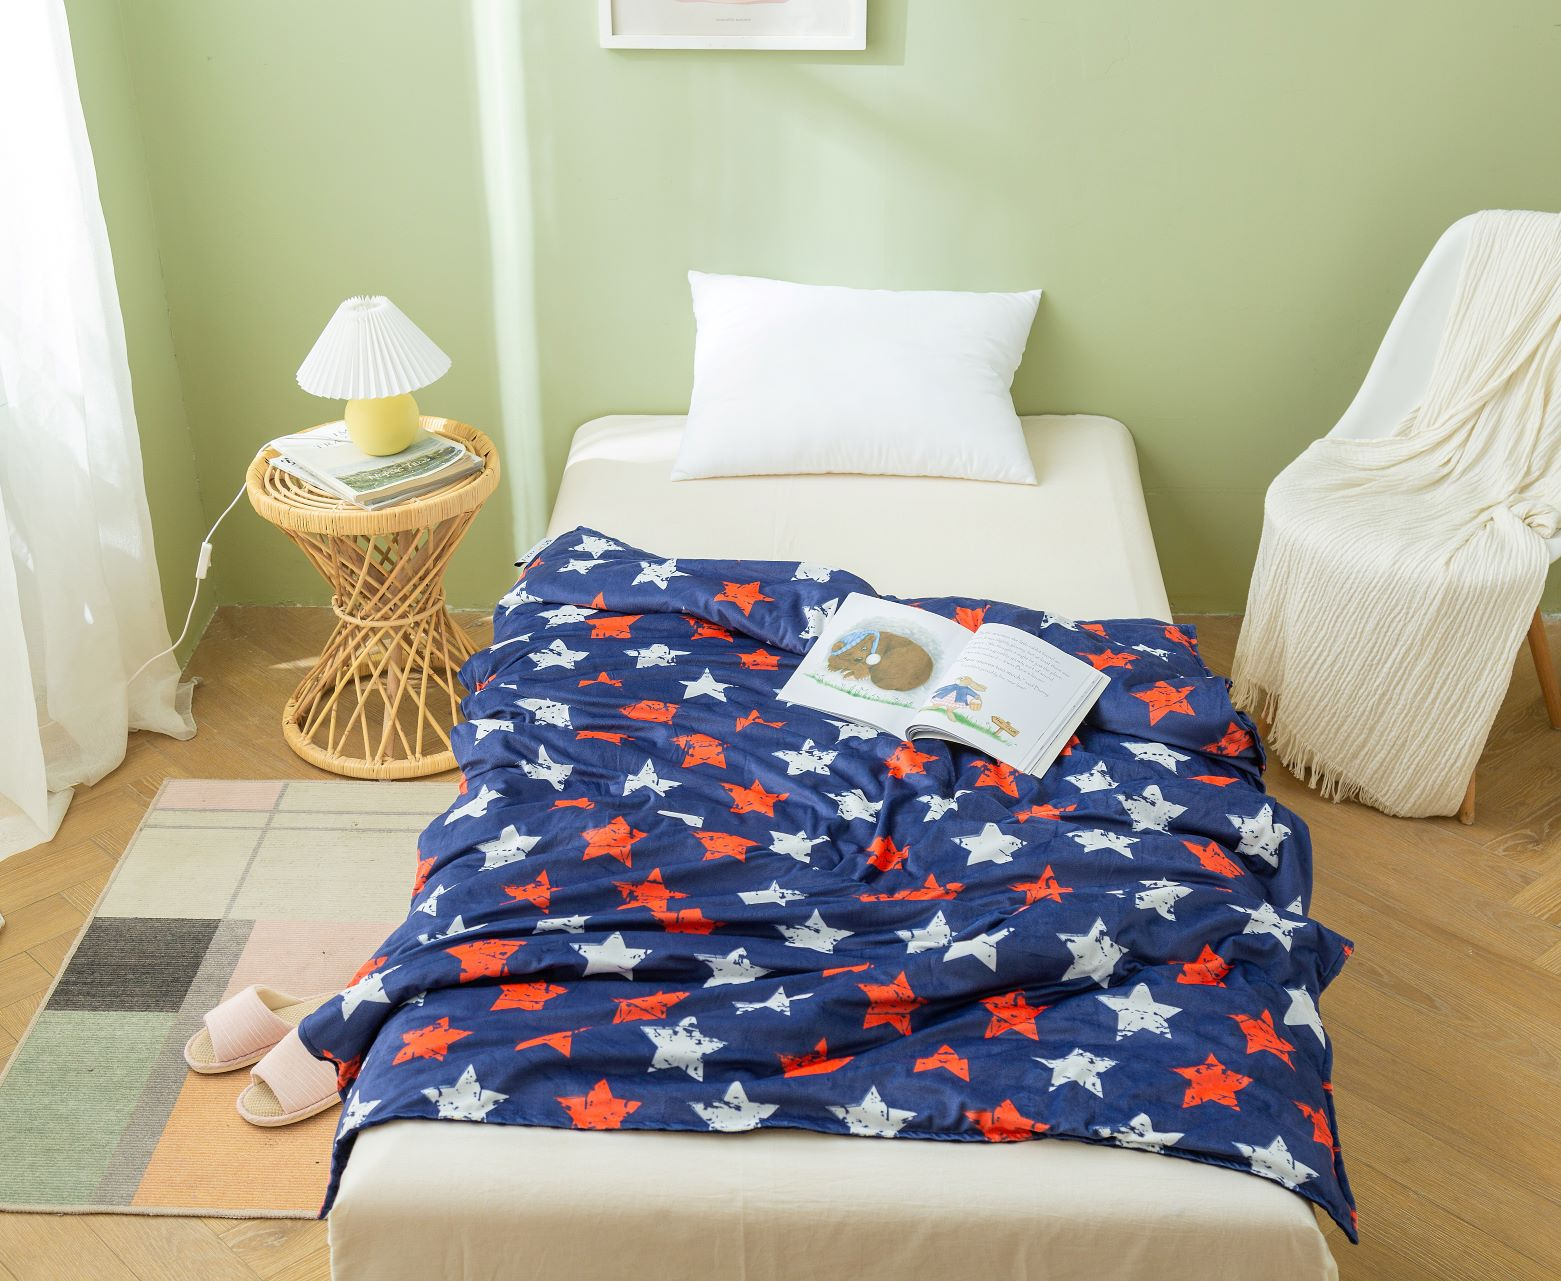 Star Print Cover for 12lb/15lb blanket- 1 size